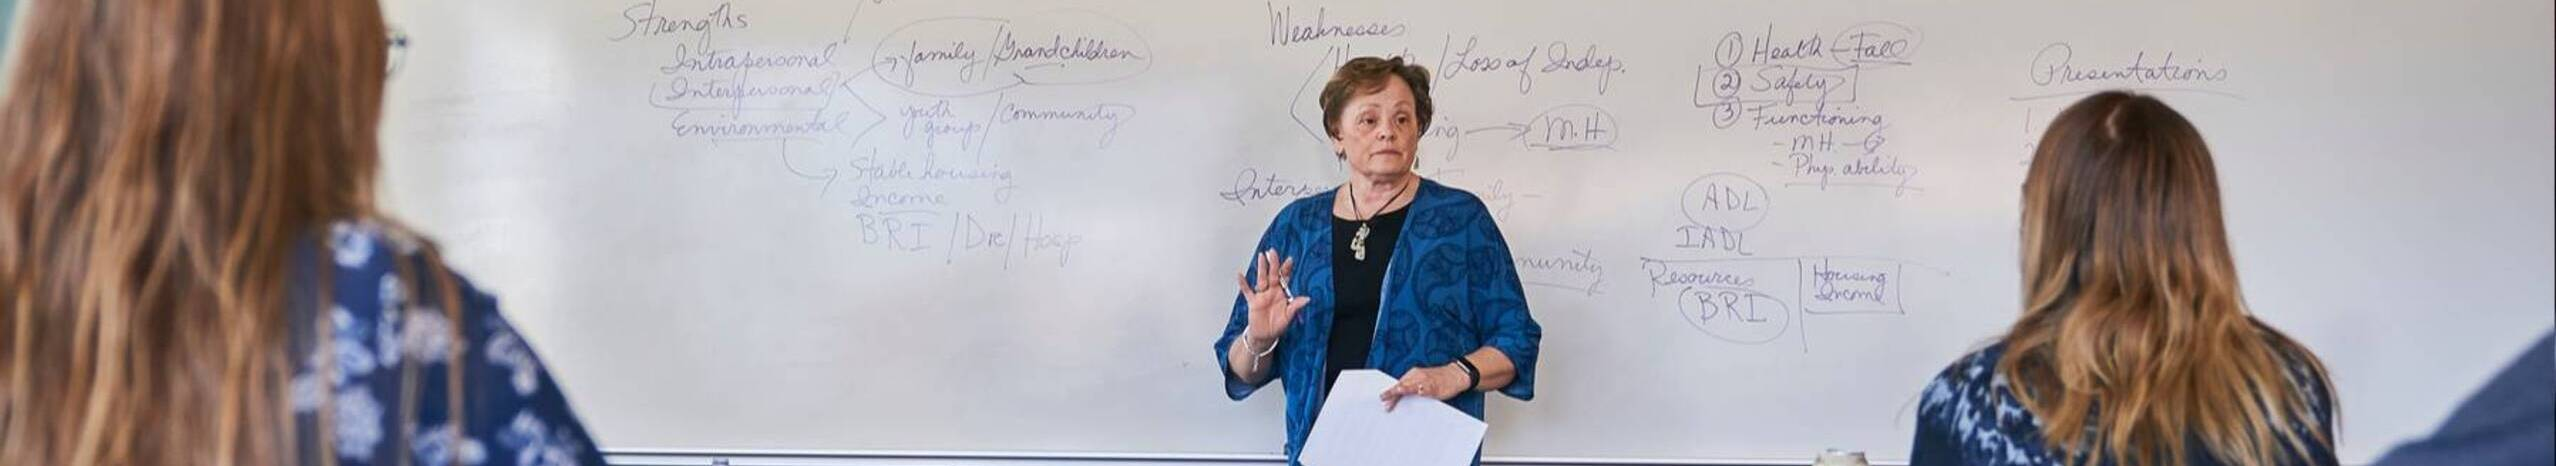 Ursuline college professor standing by white board